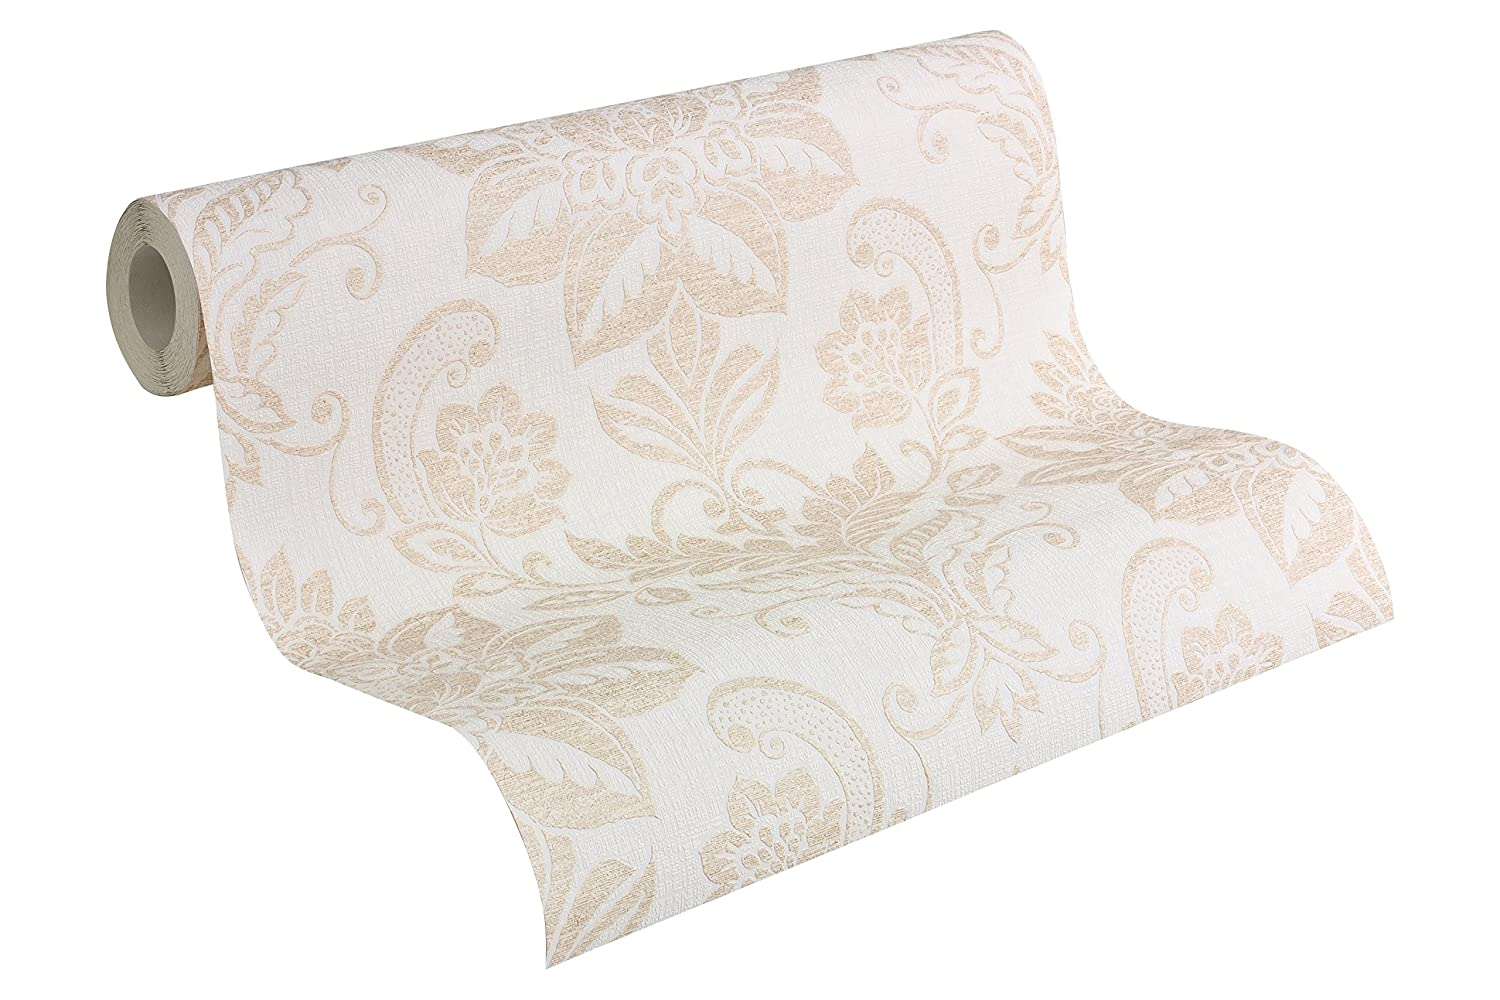 A.S. Création Vliestapete Shabby Style Tapete In Vintage Optik Klassisch  Neobarock 10,05 M X 0,53 M Beige Creme Metallic Made In Germany 293442  2934 42: ...